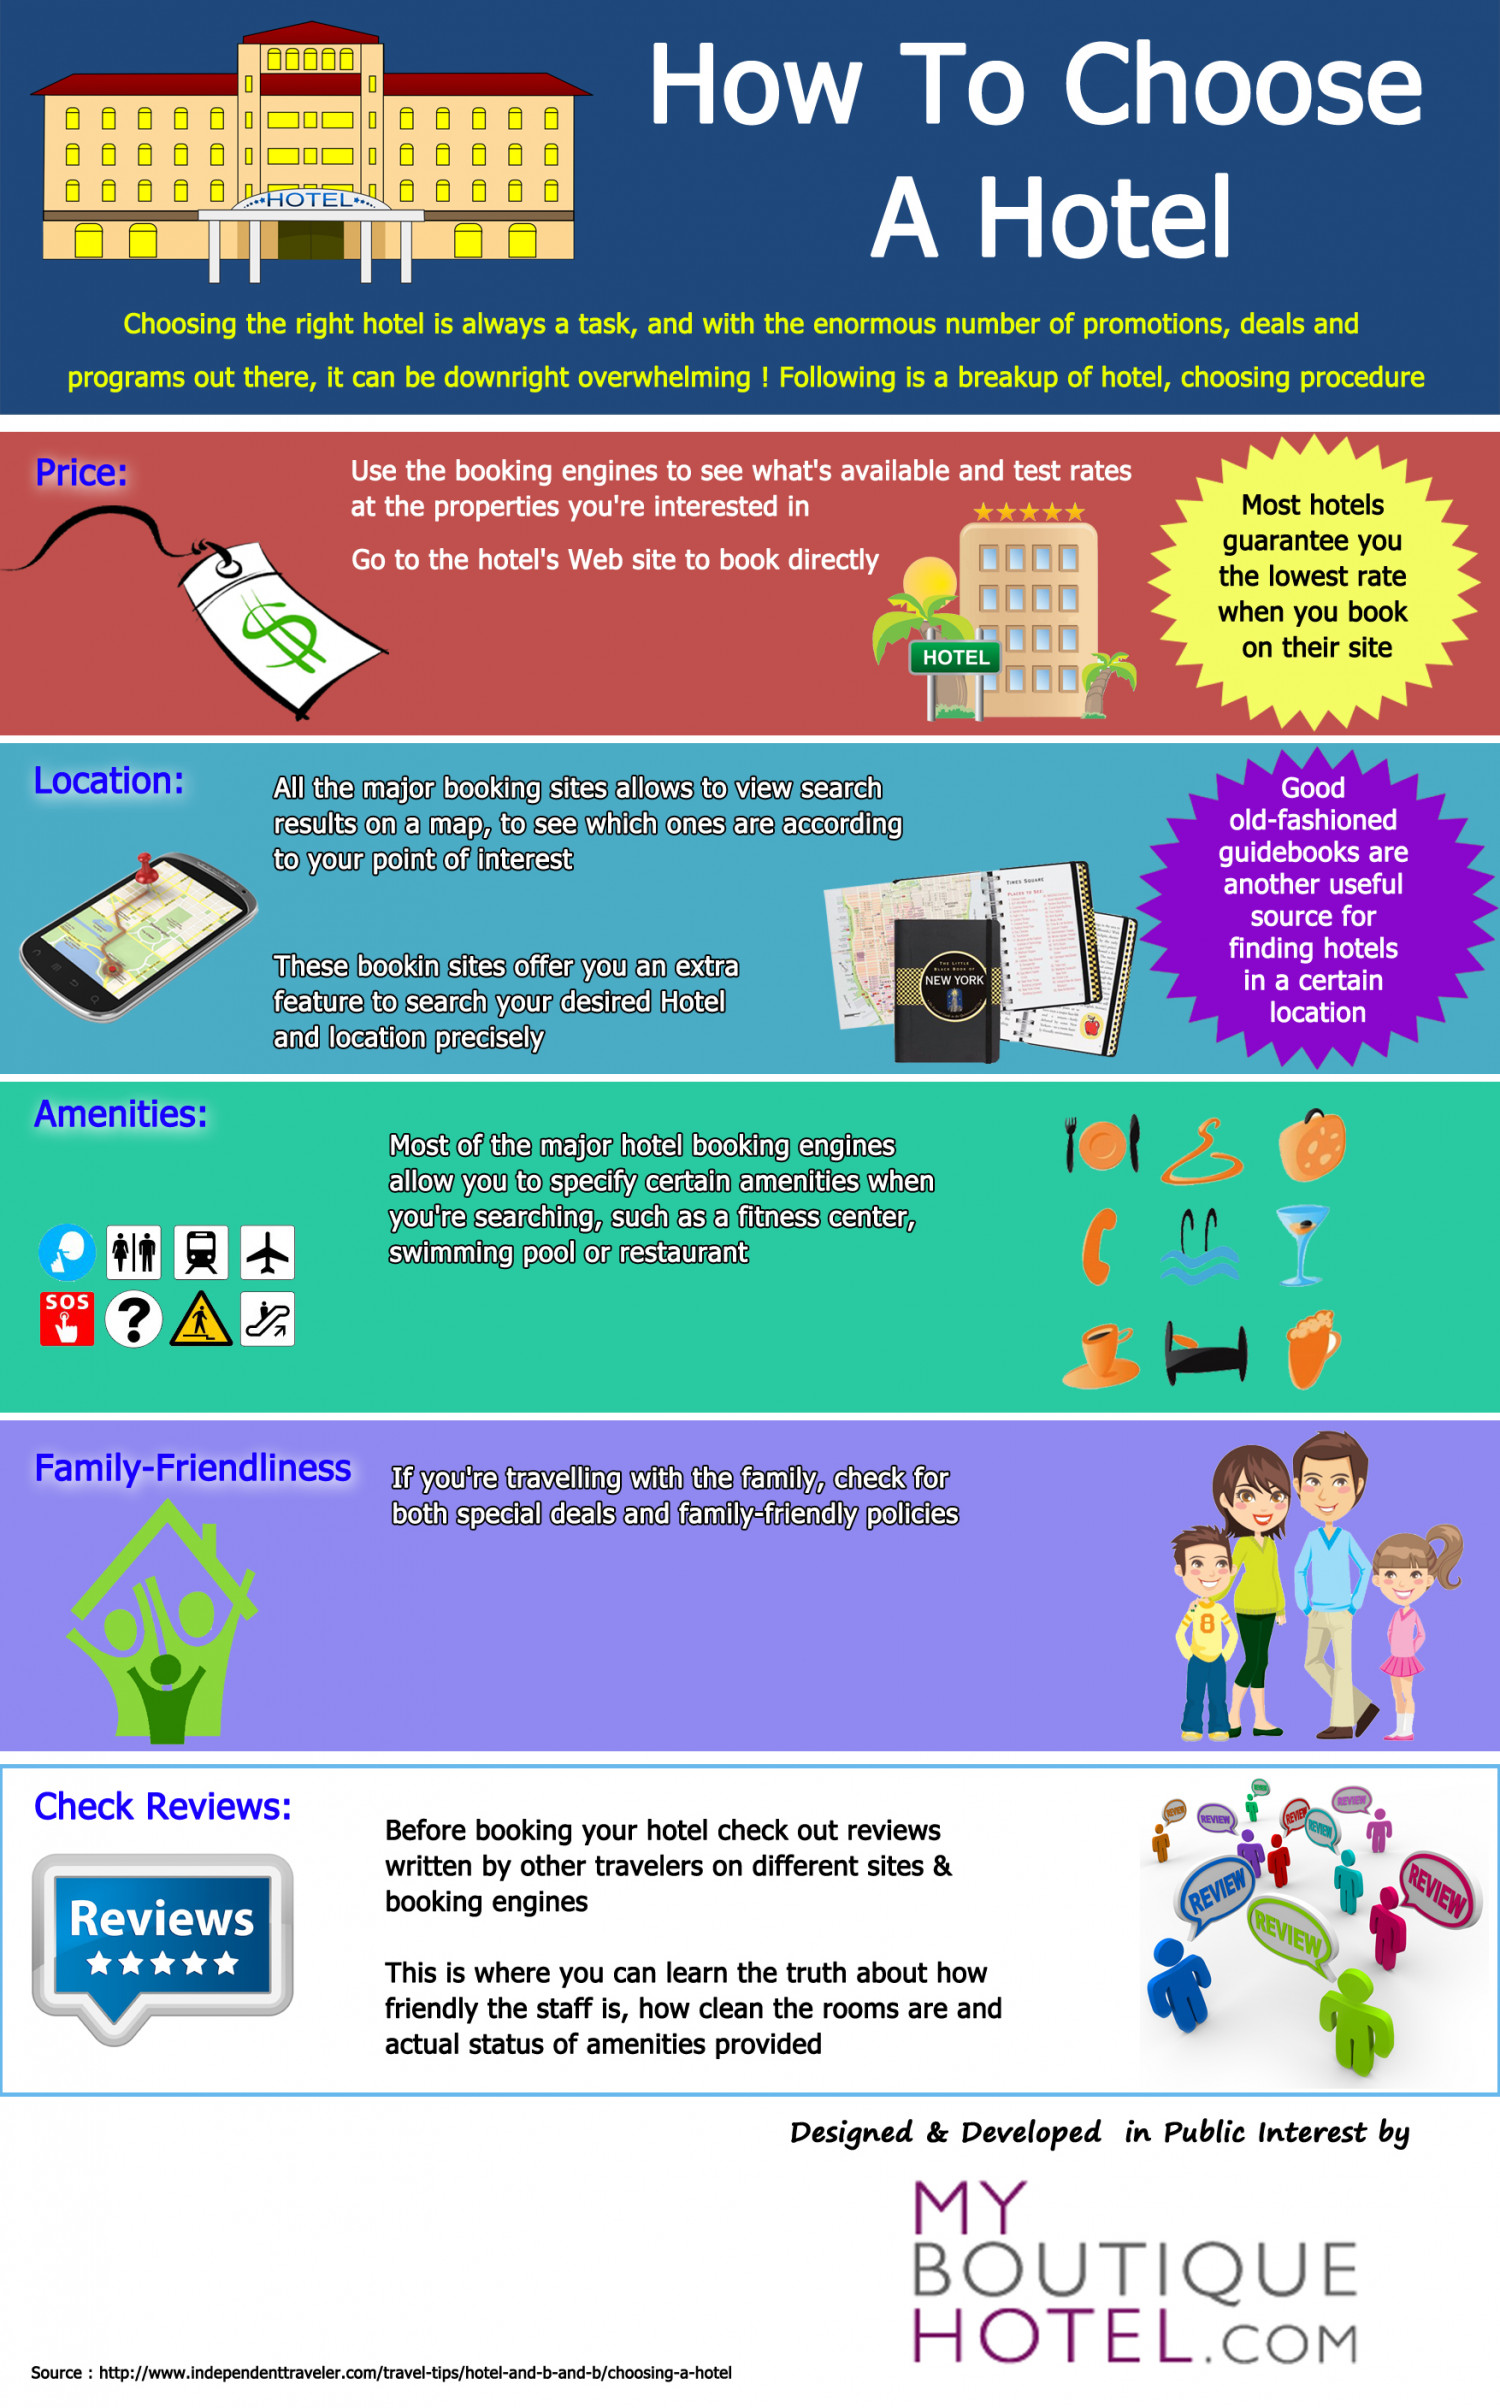 How to Choose a Hotel Infographic